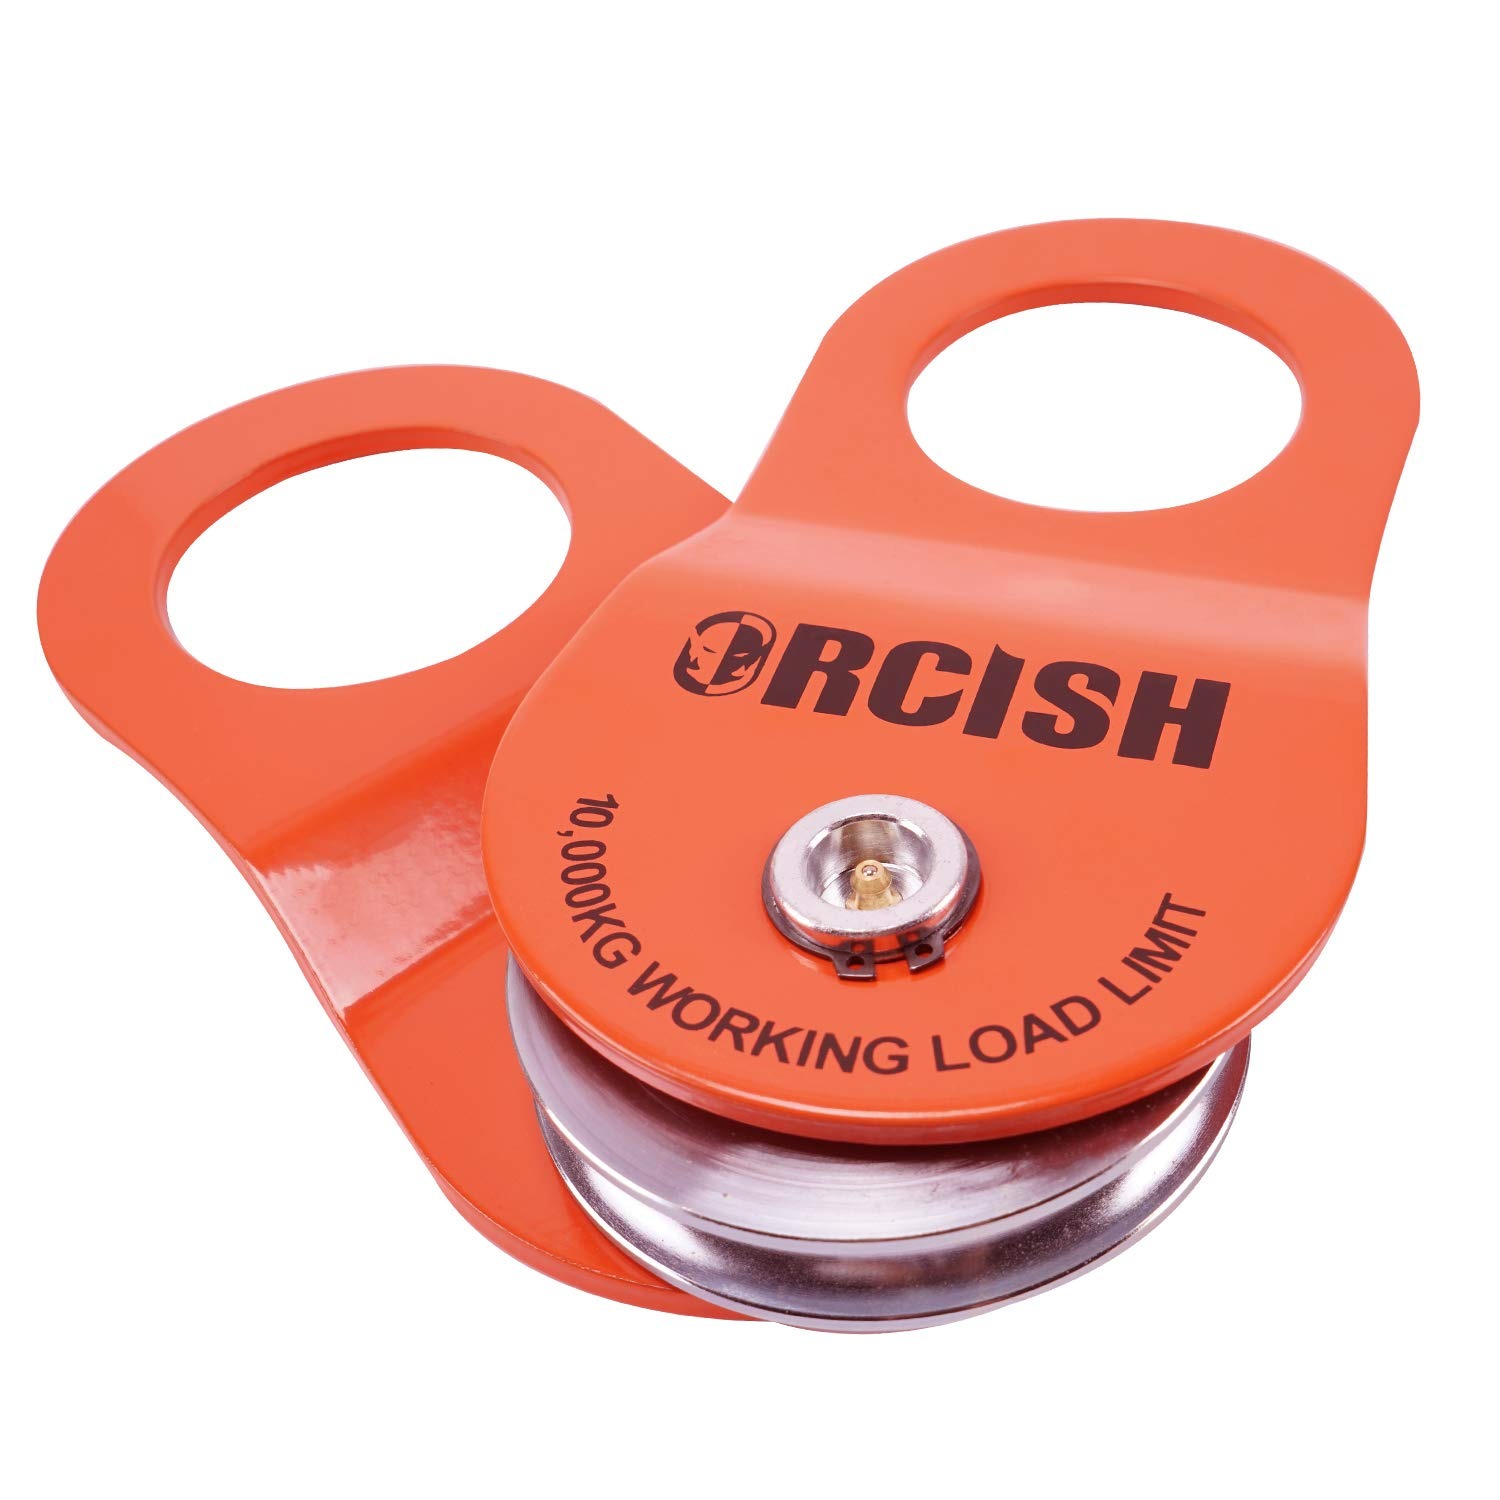 ORCISH 10T Recovery Winch Snatch Pulley Block 22000lb Capacity by ORCISH